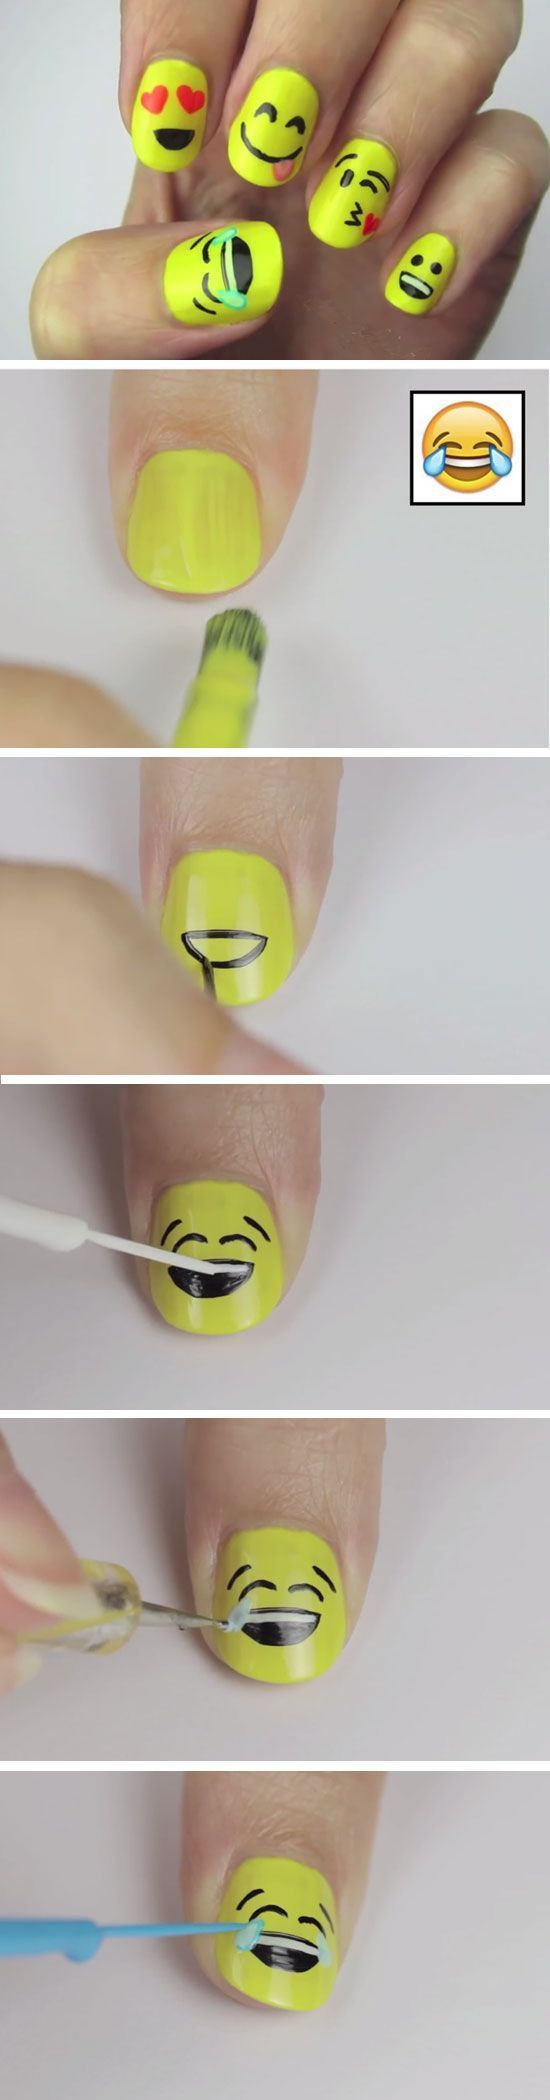 Emoji Nail Art | Click Pic for 22 DIY Back to School Nails for Kids | Awesome Nail Art Ideas for Fall. So you've had a great summer, caught some waves and even